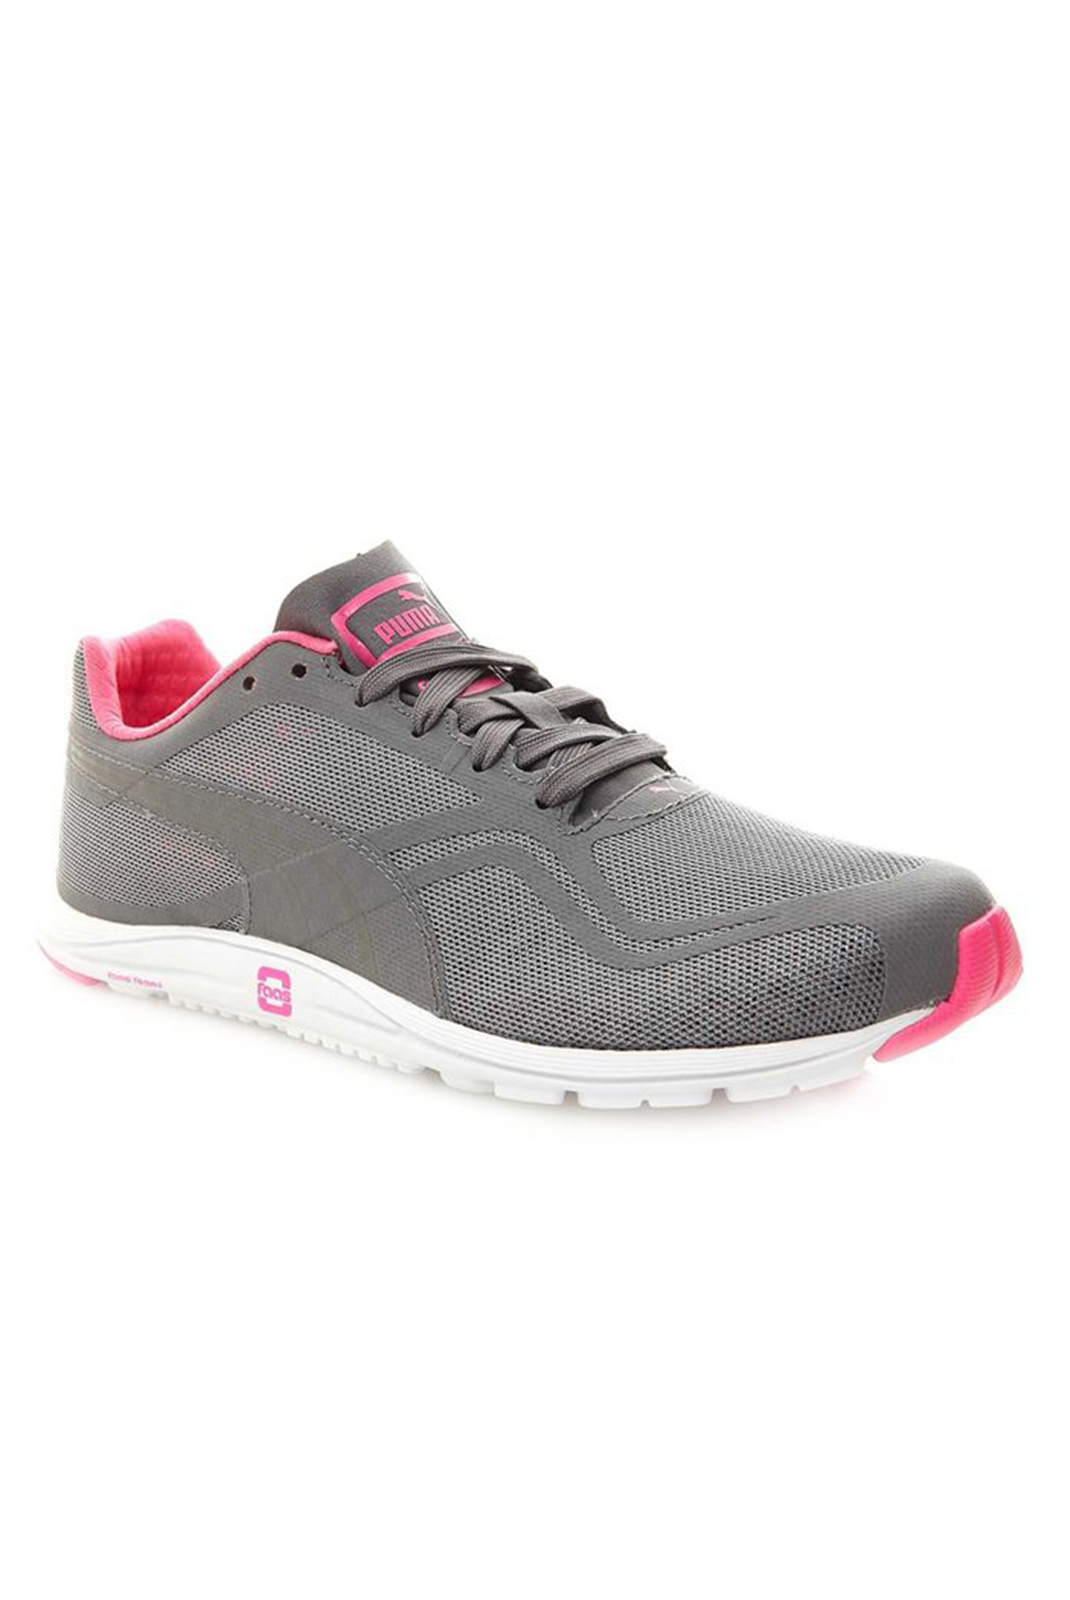 Baskets / Sneakers  Puma 359604 04 FAAS 100 GRIS ROSE